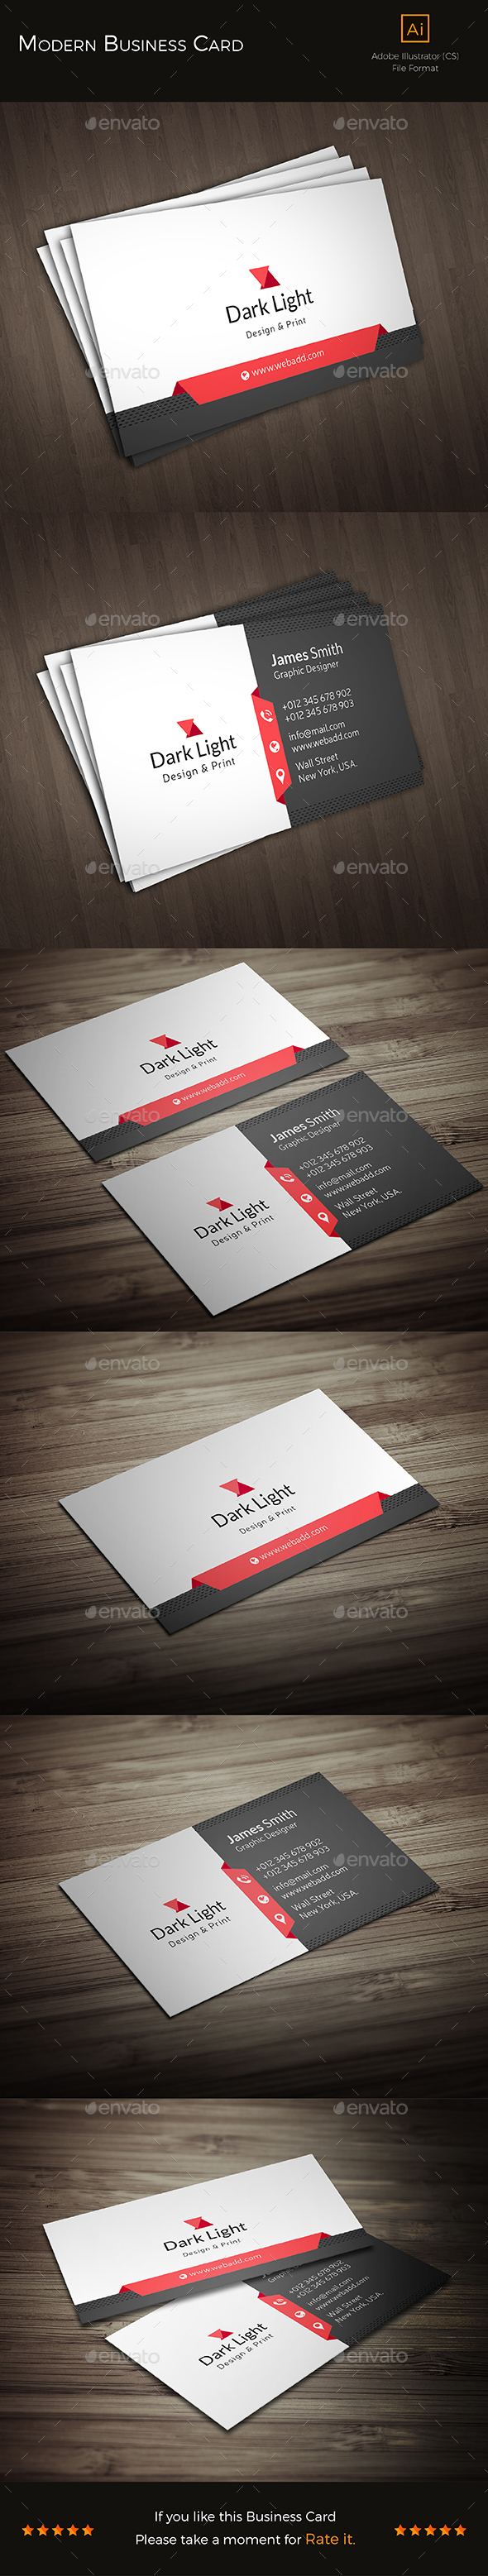 Modern Business Card ii - Business Cards Print Templates